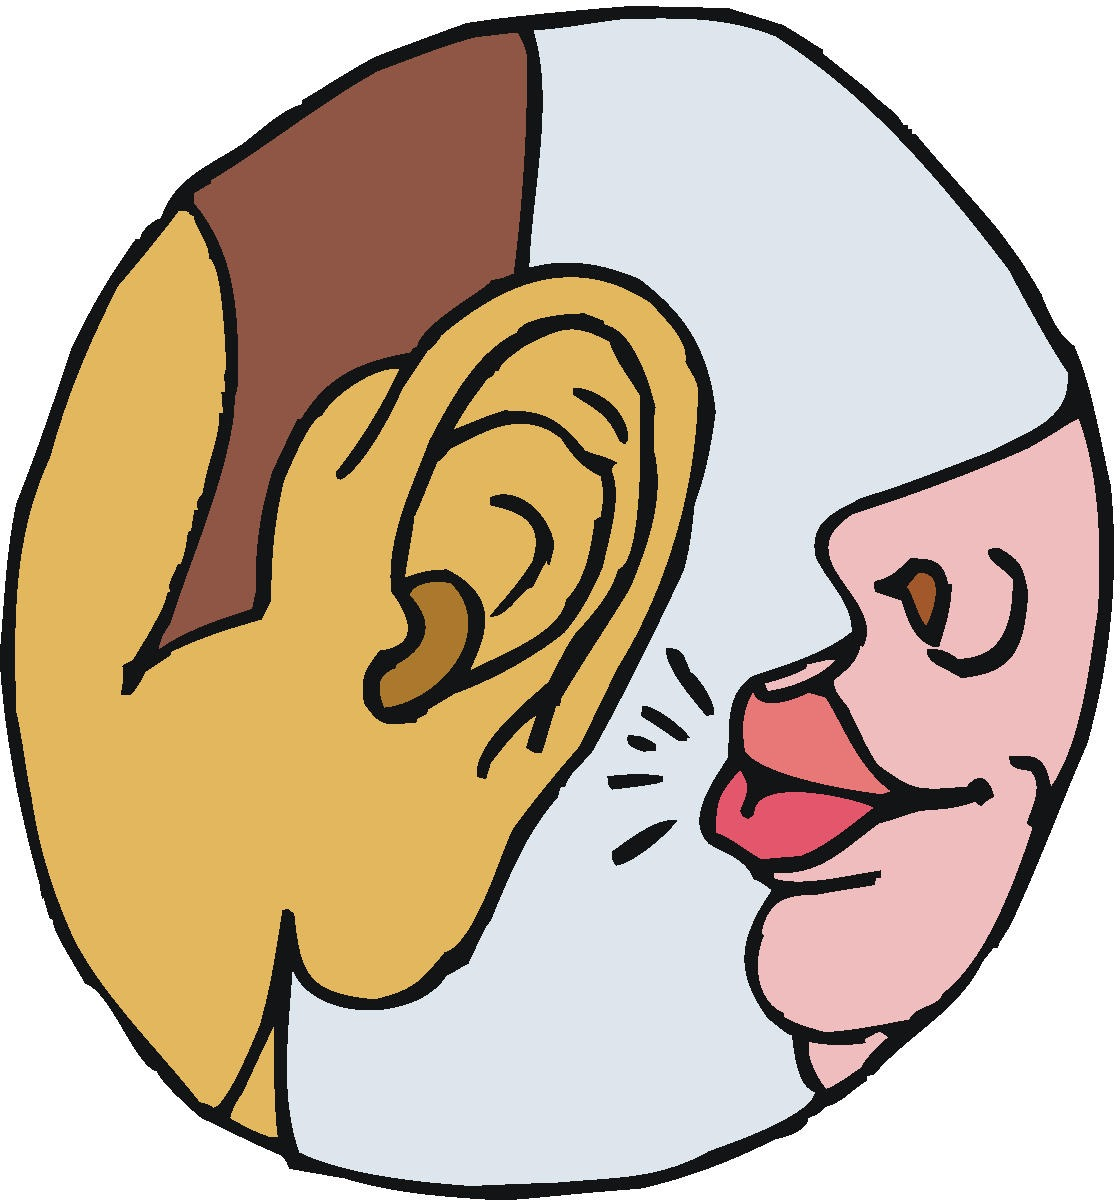 Shhh clipart whisper voice. Free hearing cliparts download